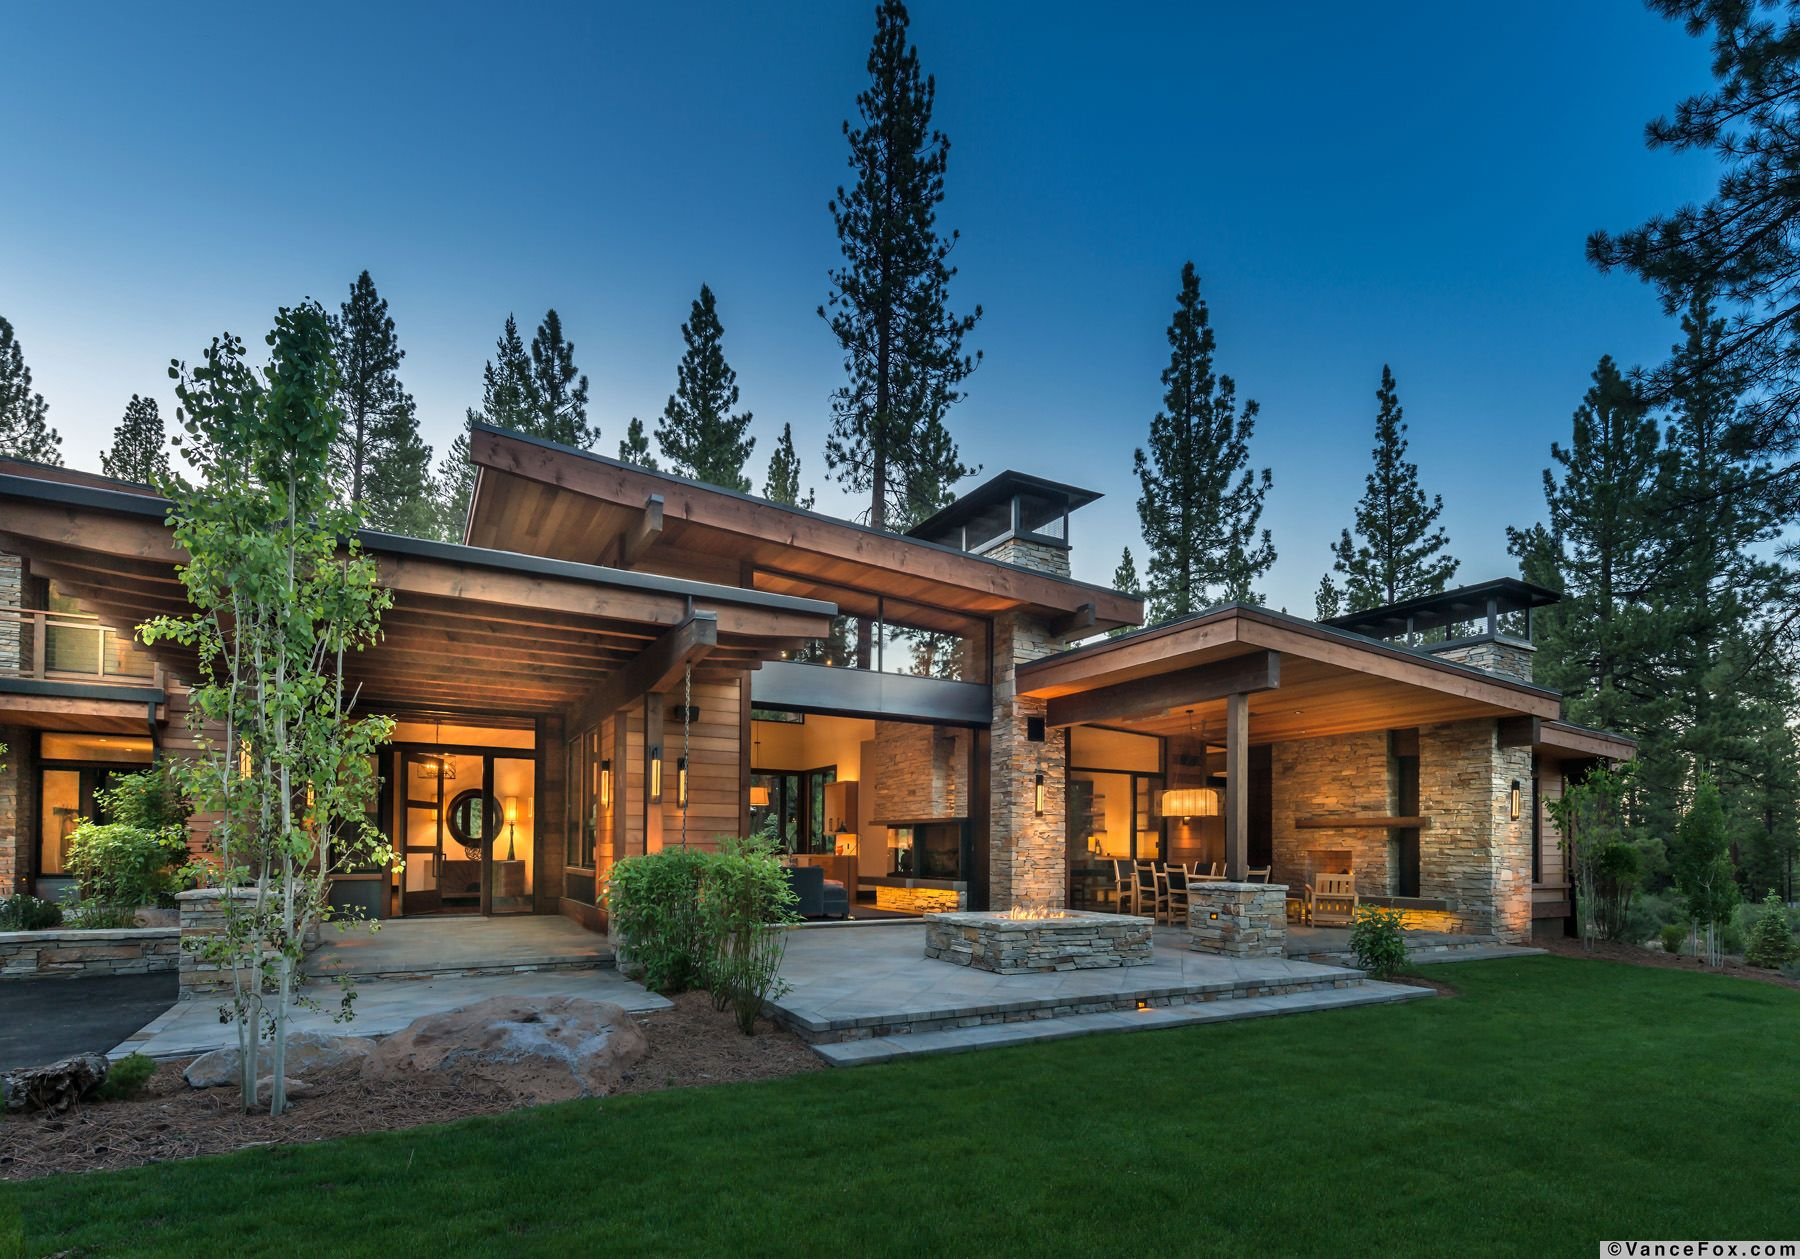 This mountain modern home was designed by